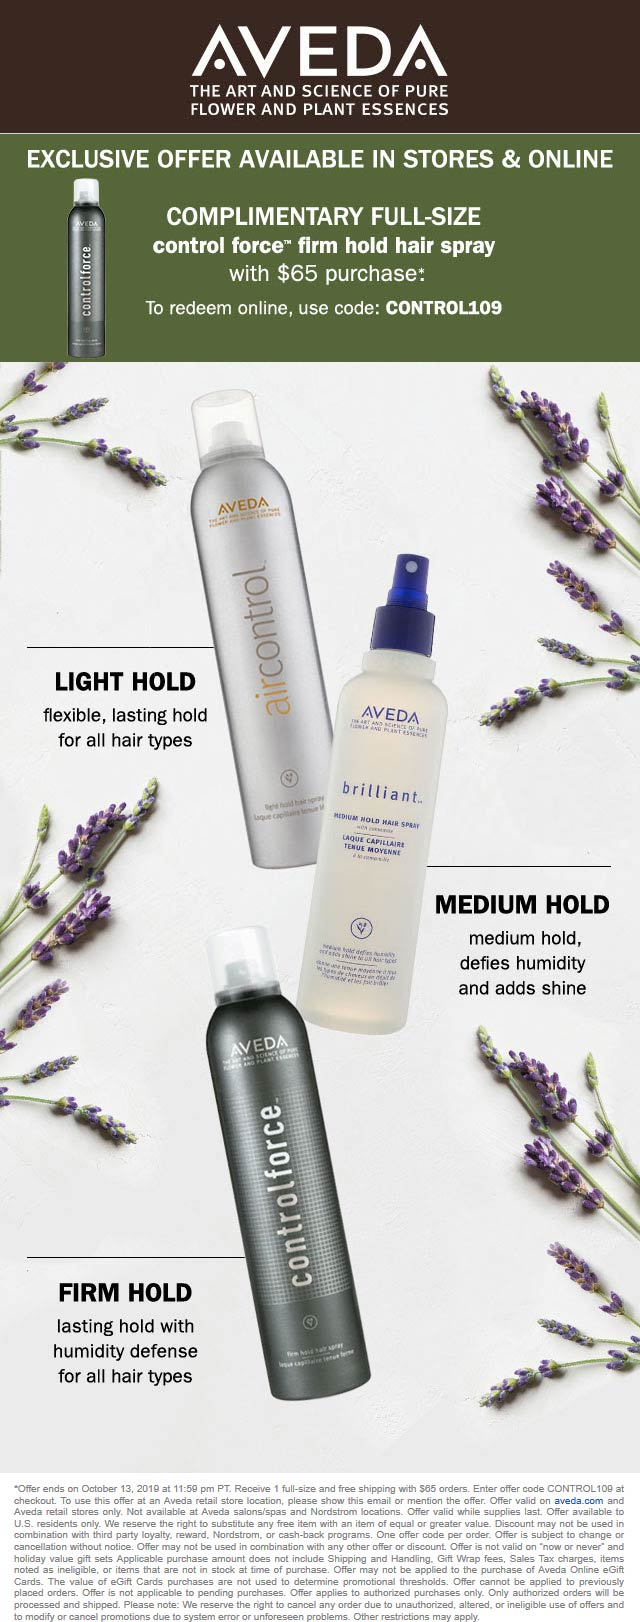 Aveda Coupon January 2020 Free full size hair spray with $65 spent at AVEDA, or online via promo code CONTROL109